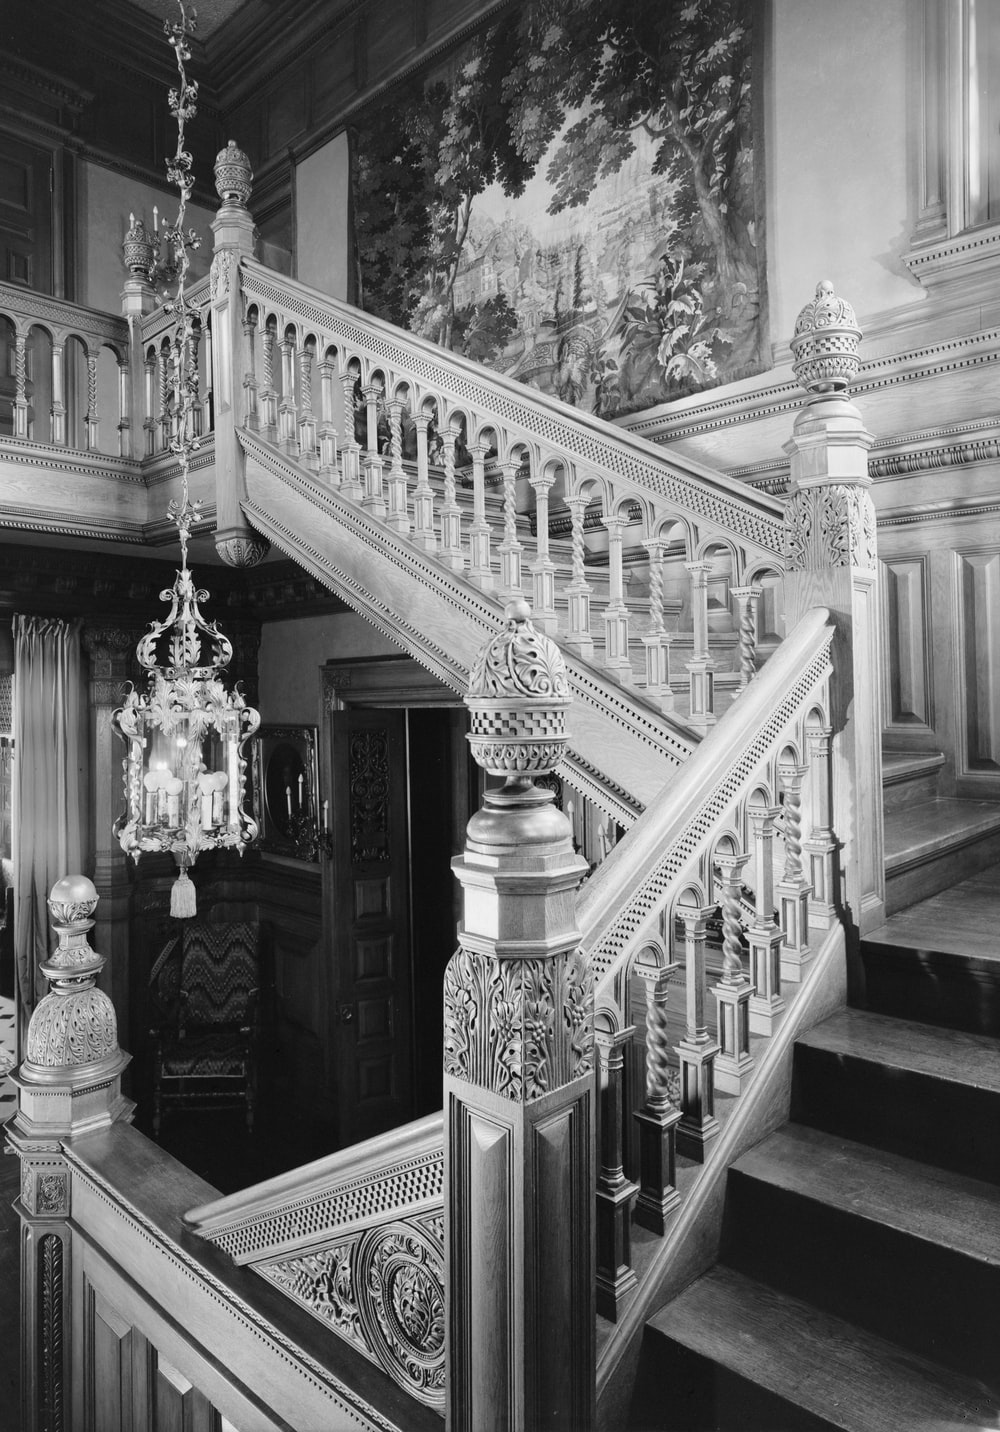 James C. Burbank House -- Stairhall